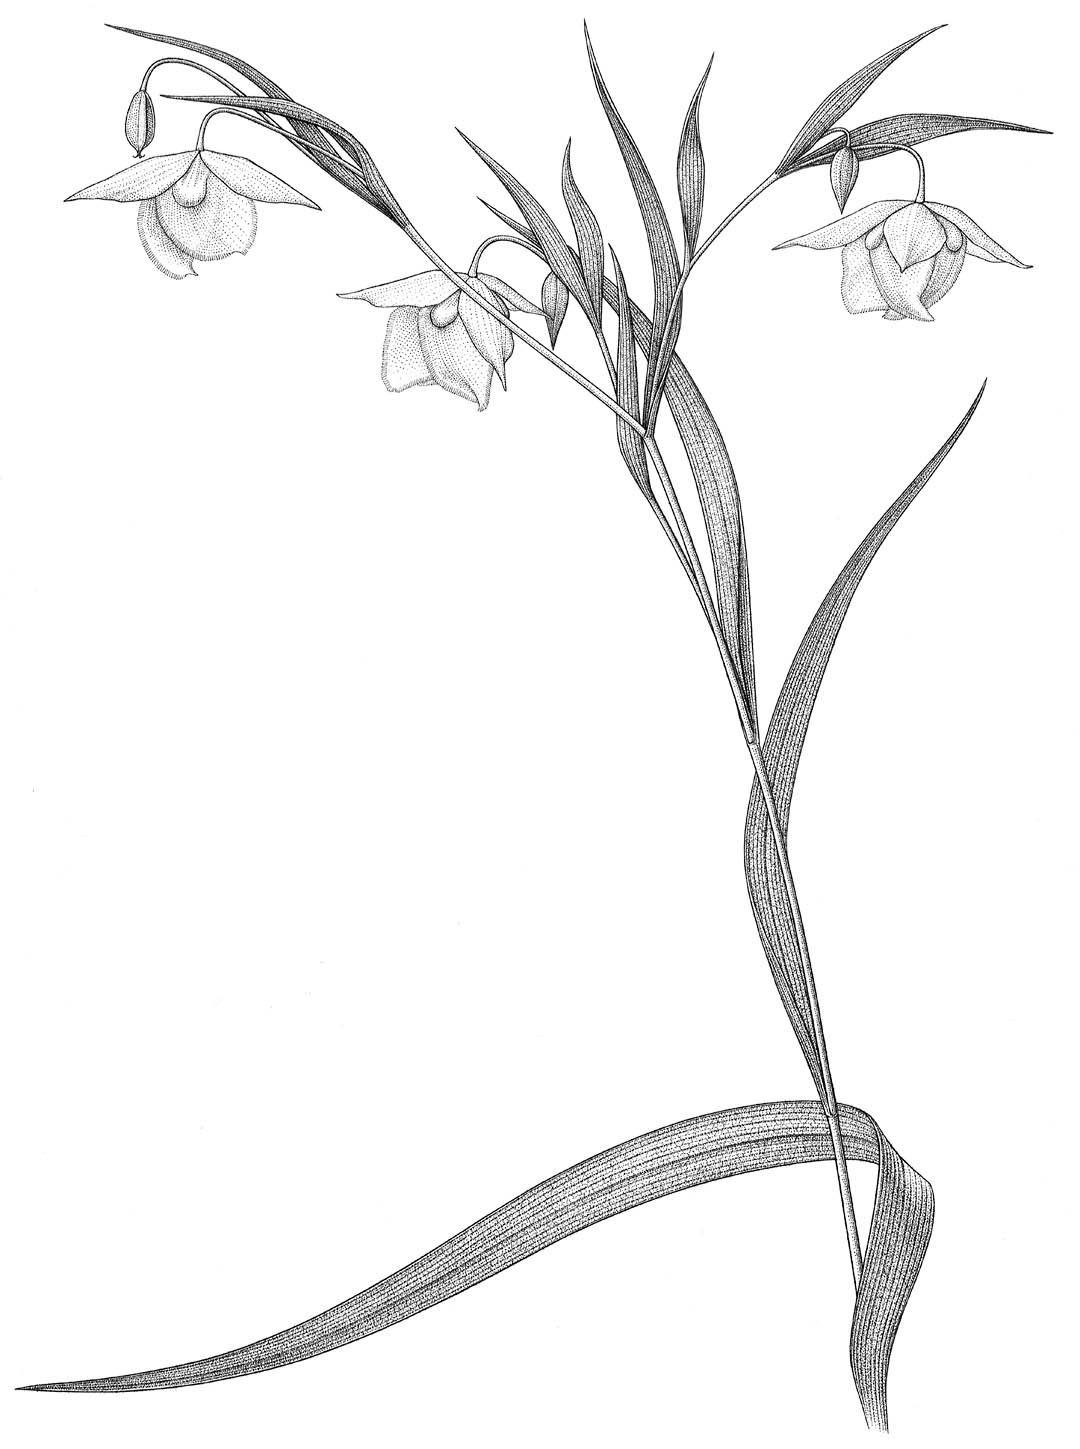 Pacific horticulture society globe lilies for the garden golden globe lily calochortus amabilis drawing by kristin jakob izmirmasajfo